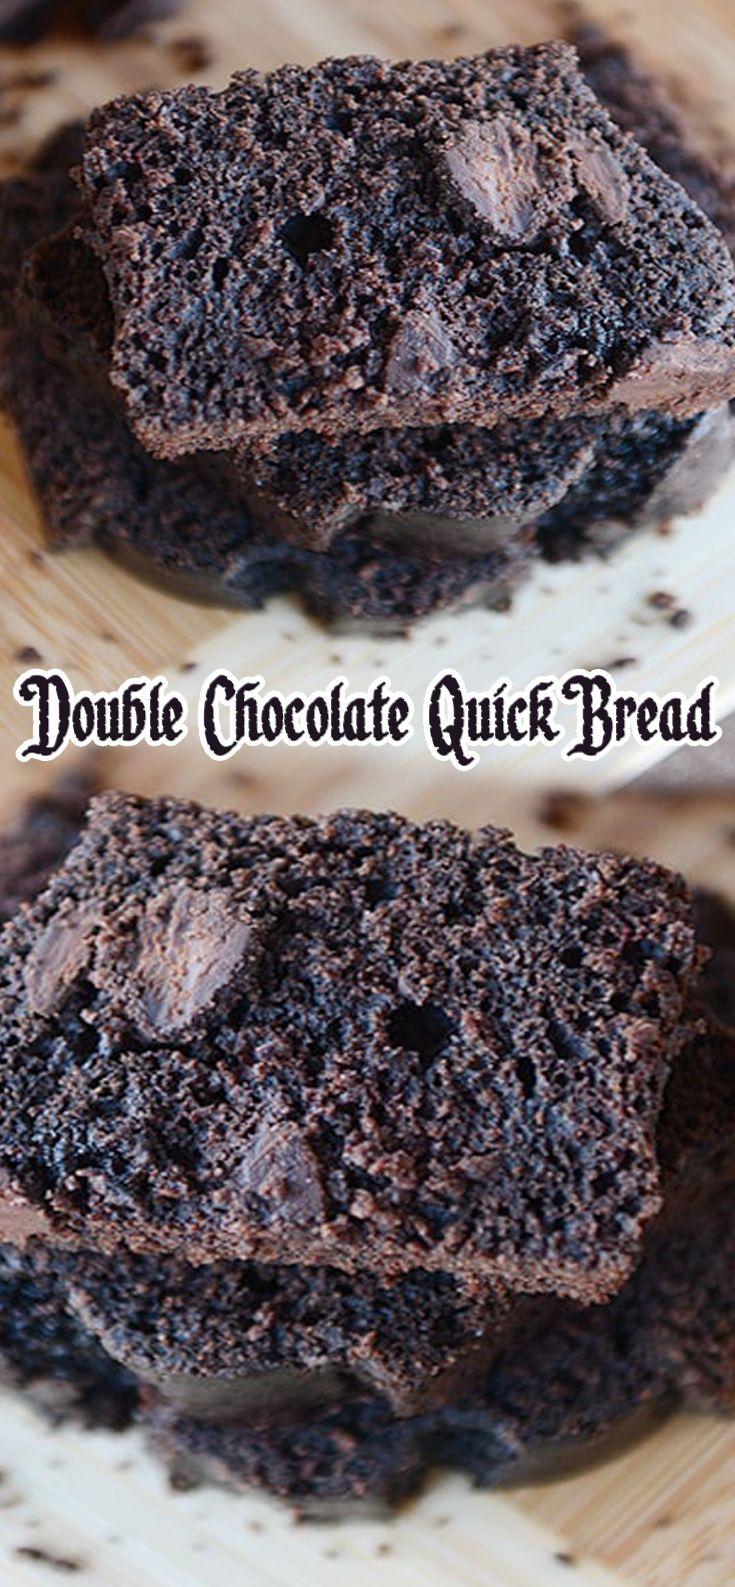 Double Chocolate Quick Bread With Images Chocolate Quick